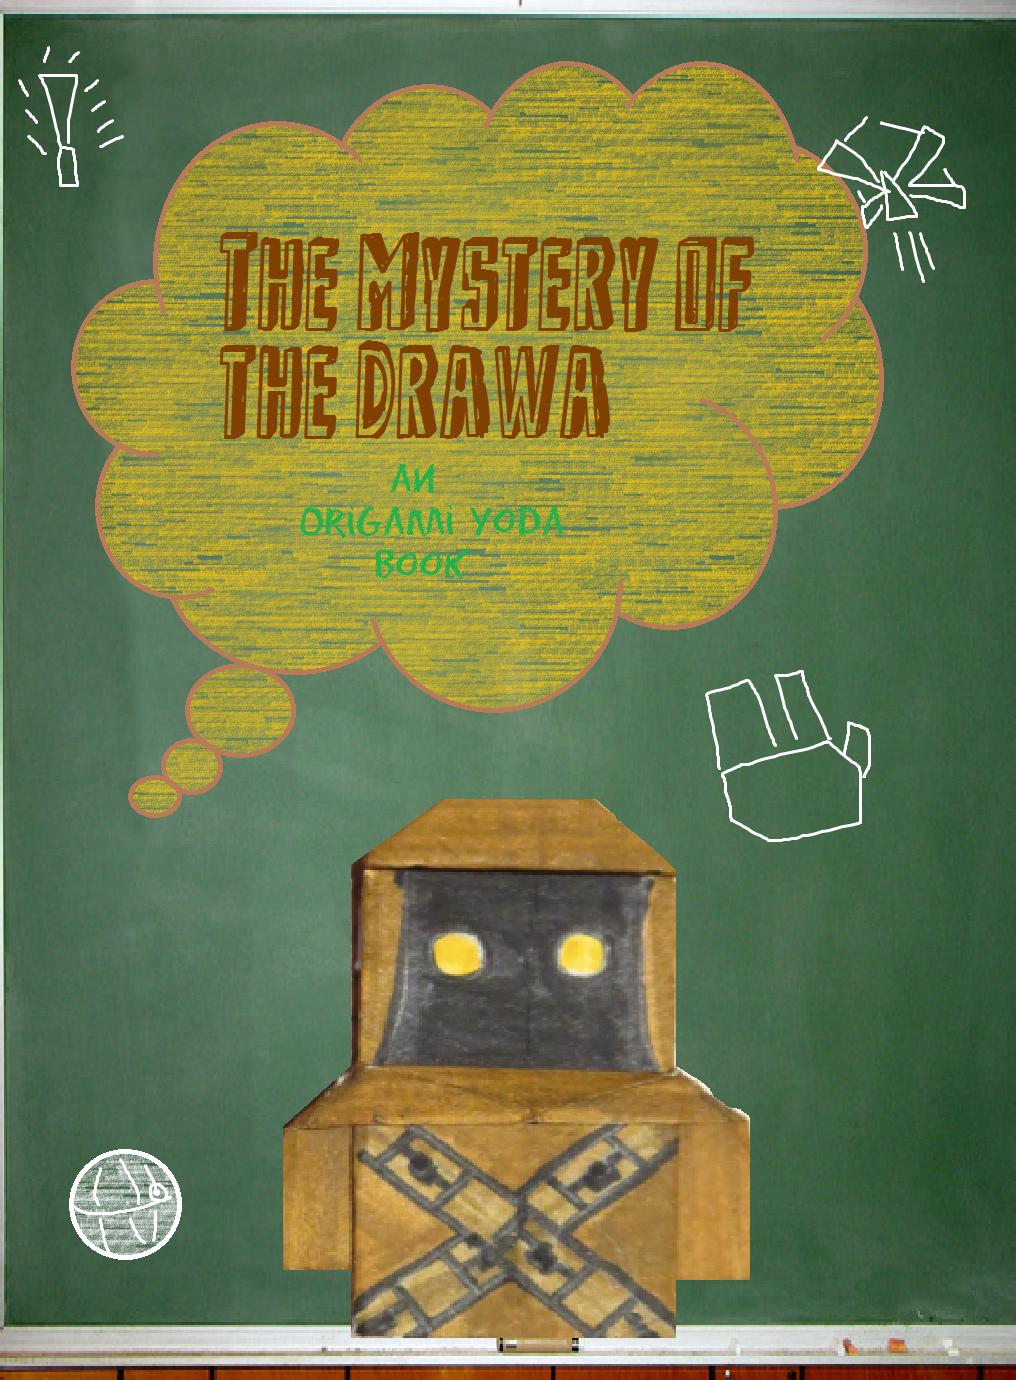 episode 7 the mystery of the drawa origami yoda the